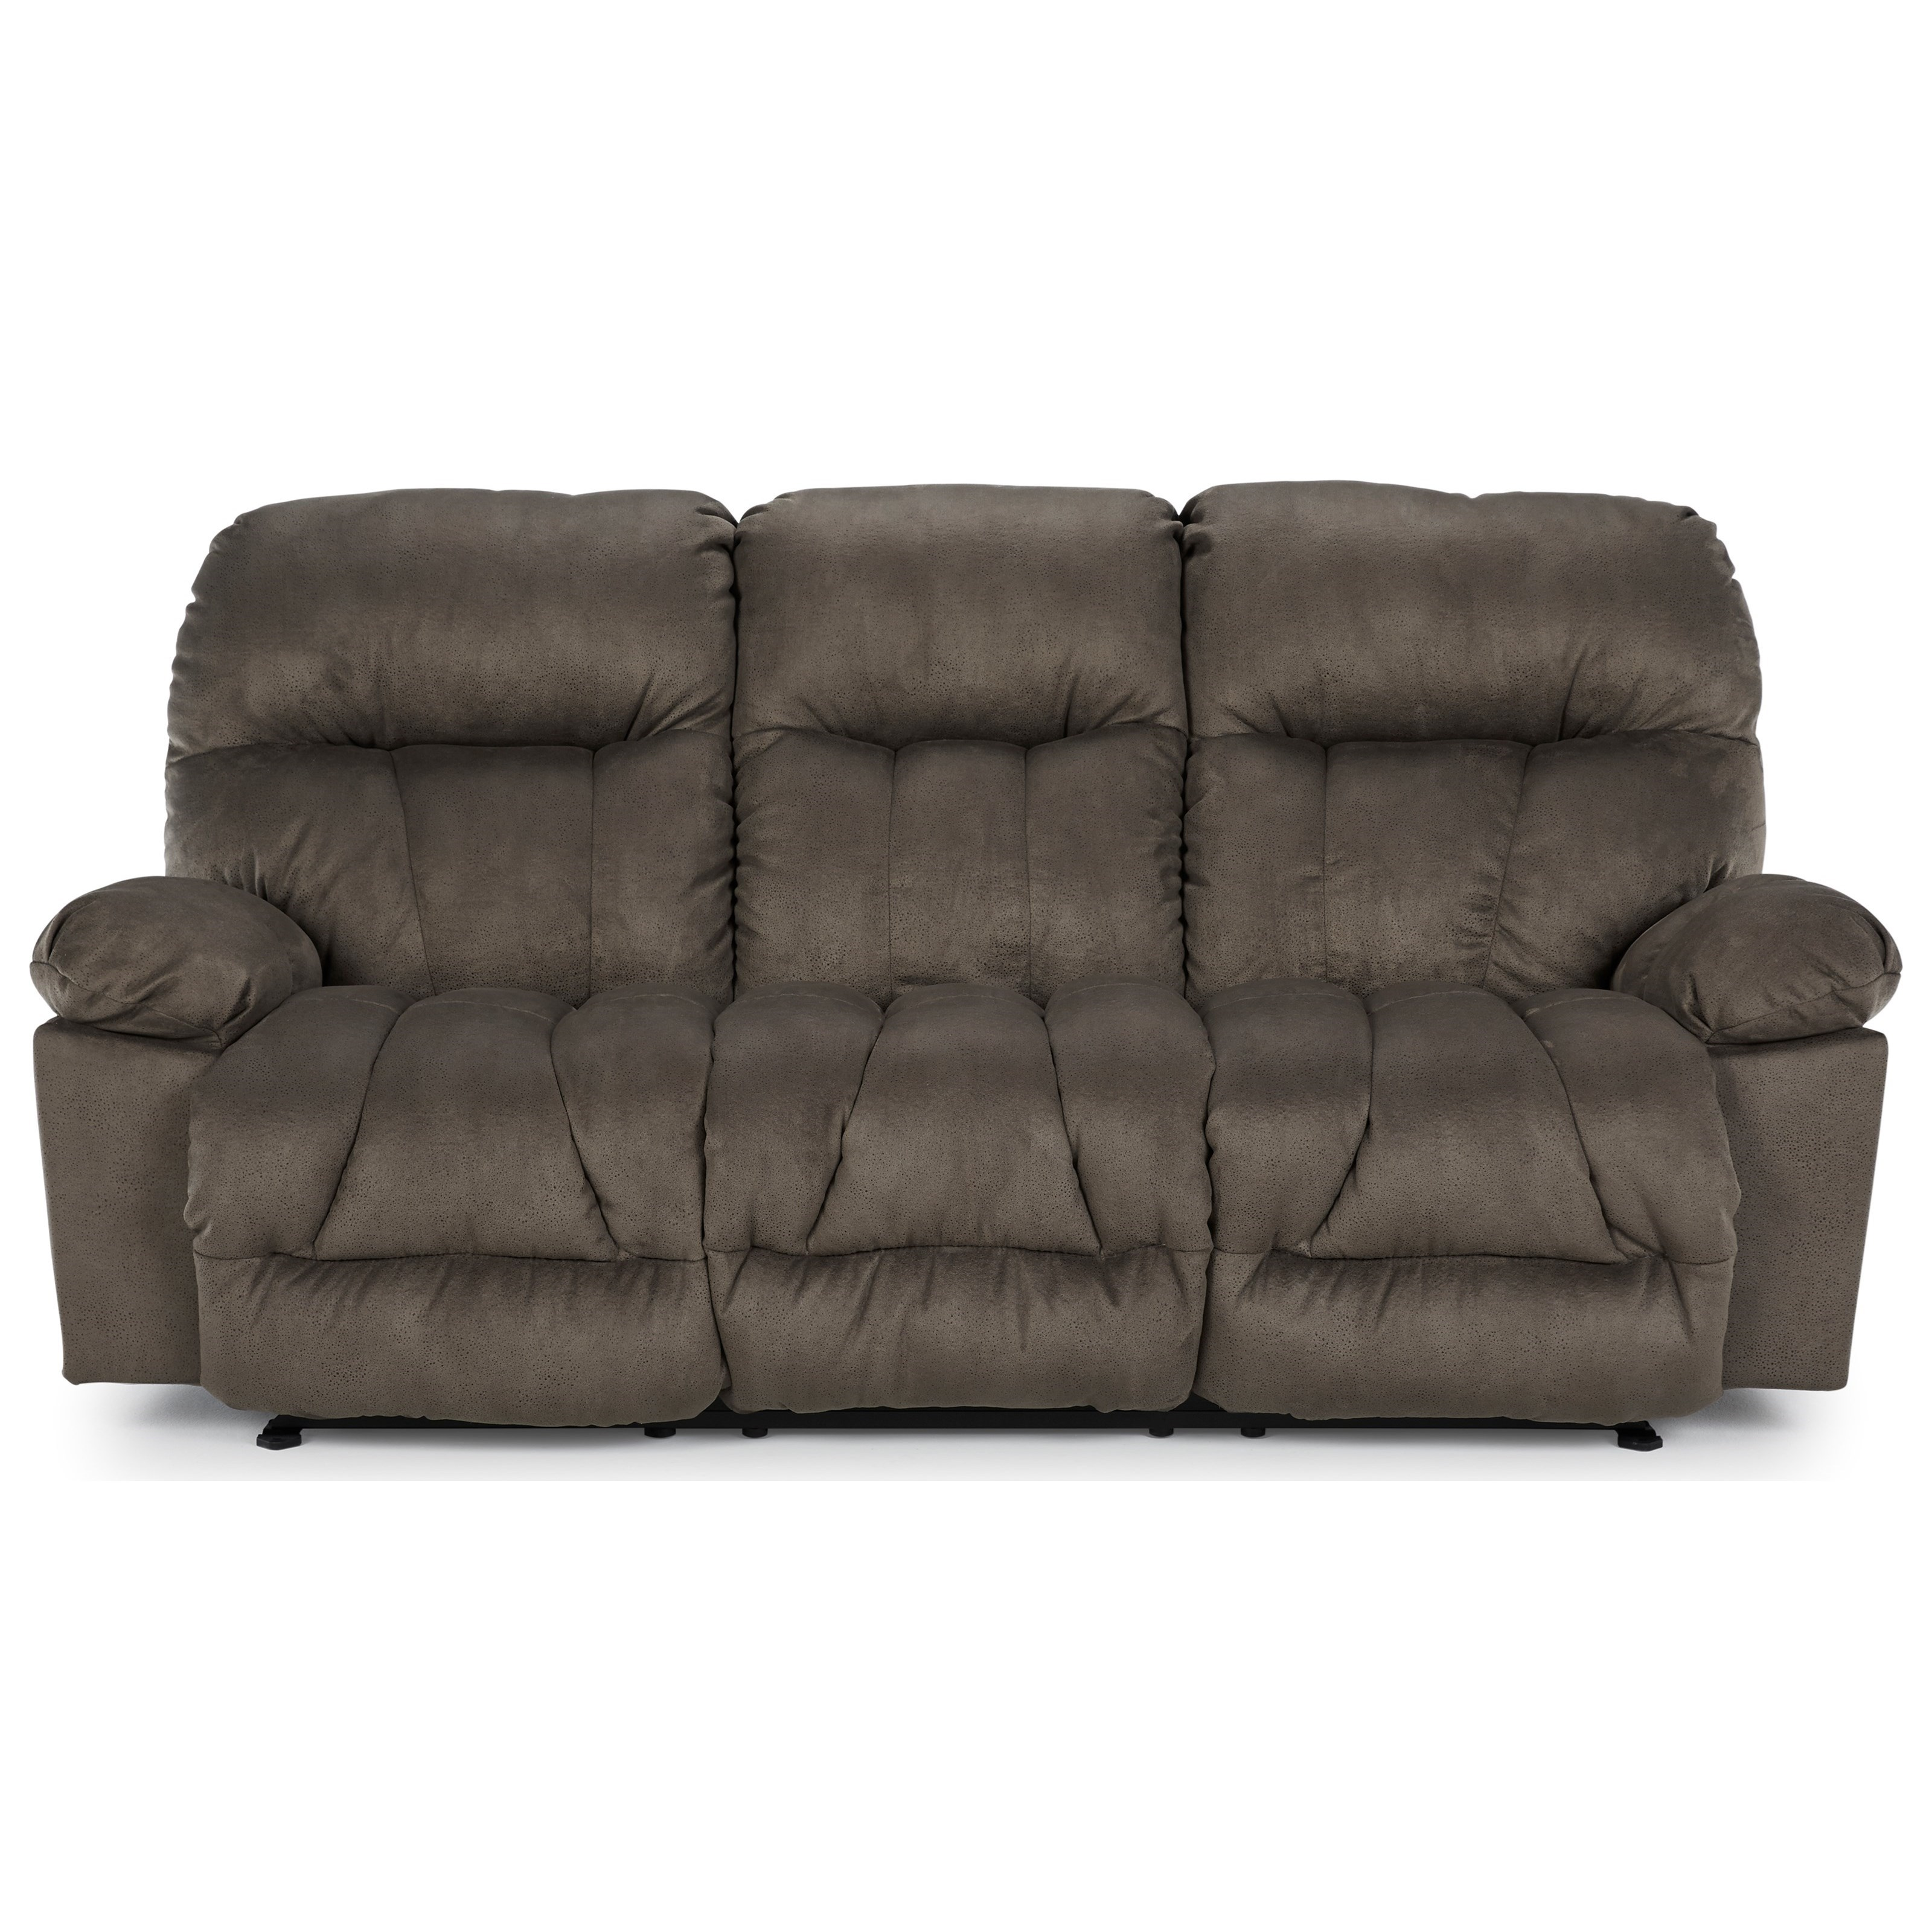 Retreat Reclining Space Saver Sofa by Best Home Furnishings at Best Home Furnishings